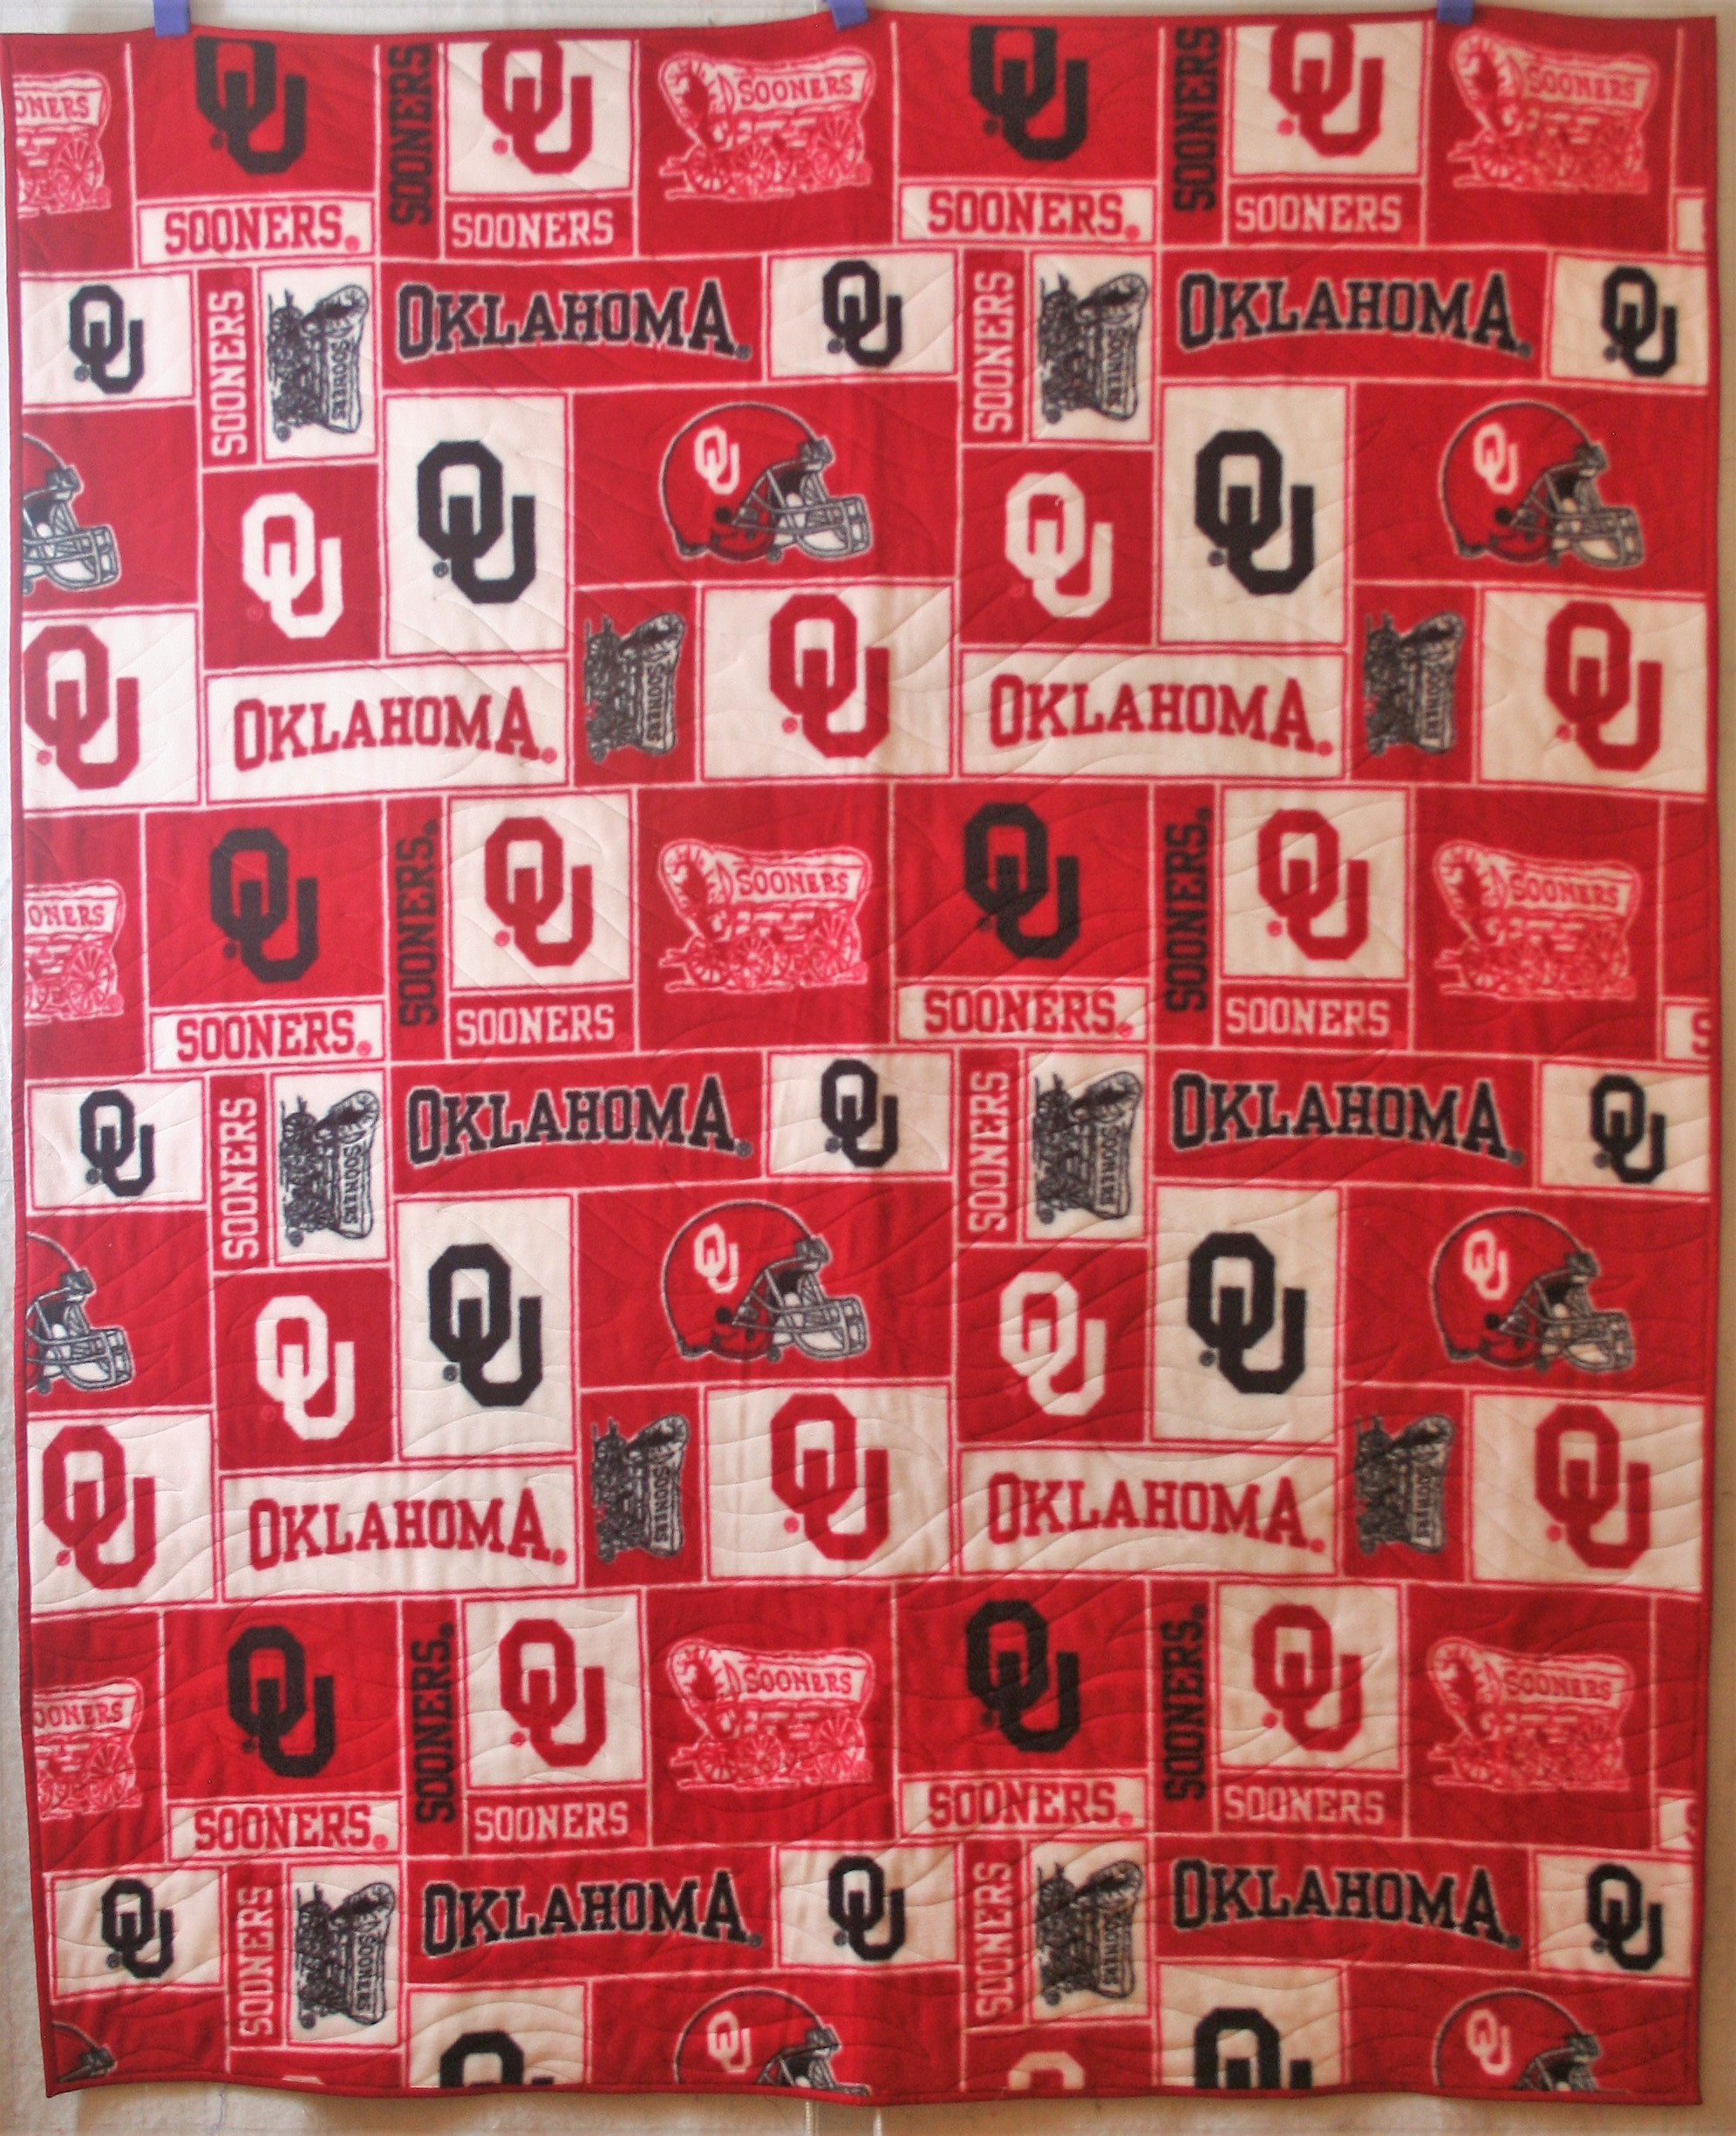 Sooners Quilt (back)